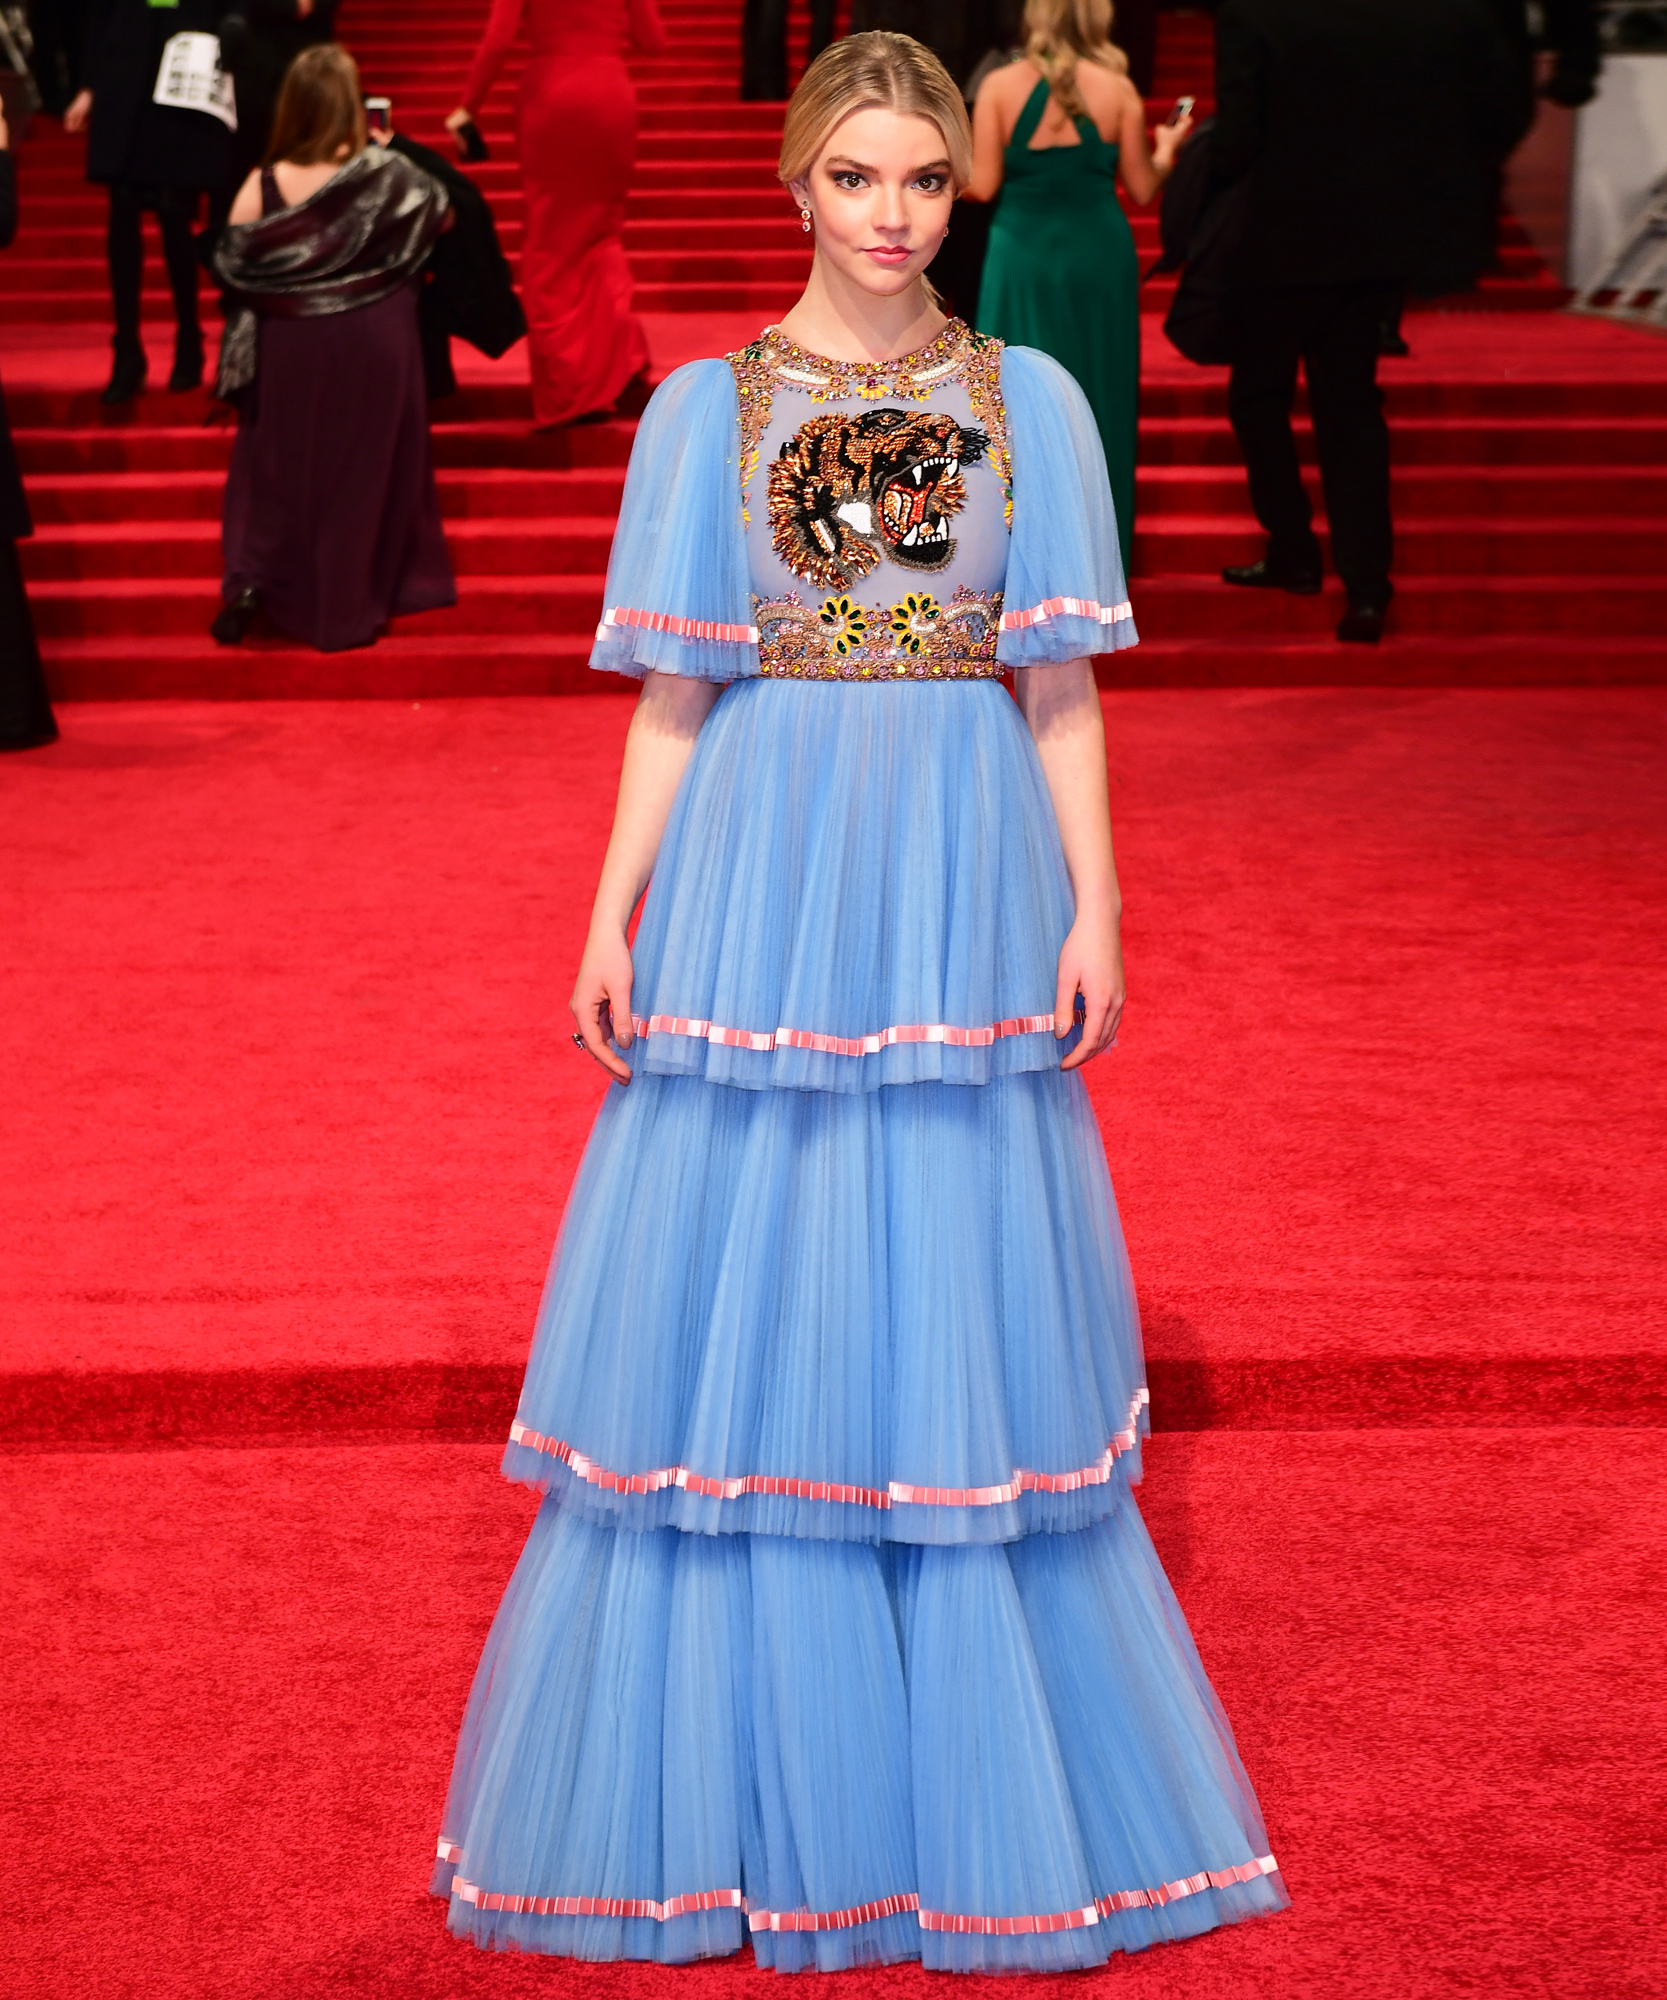 15 Things to Know About Anya Taylor-Joy's Amazing Style